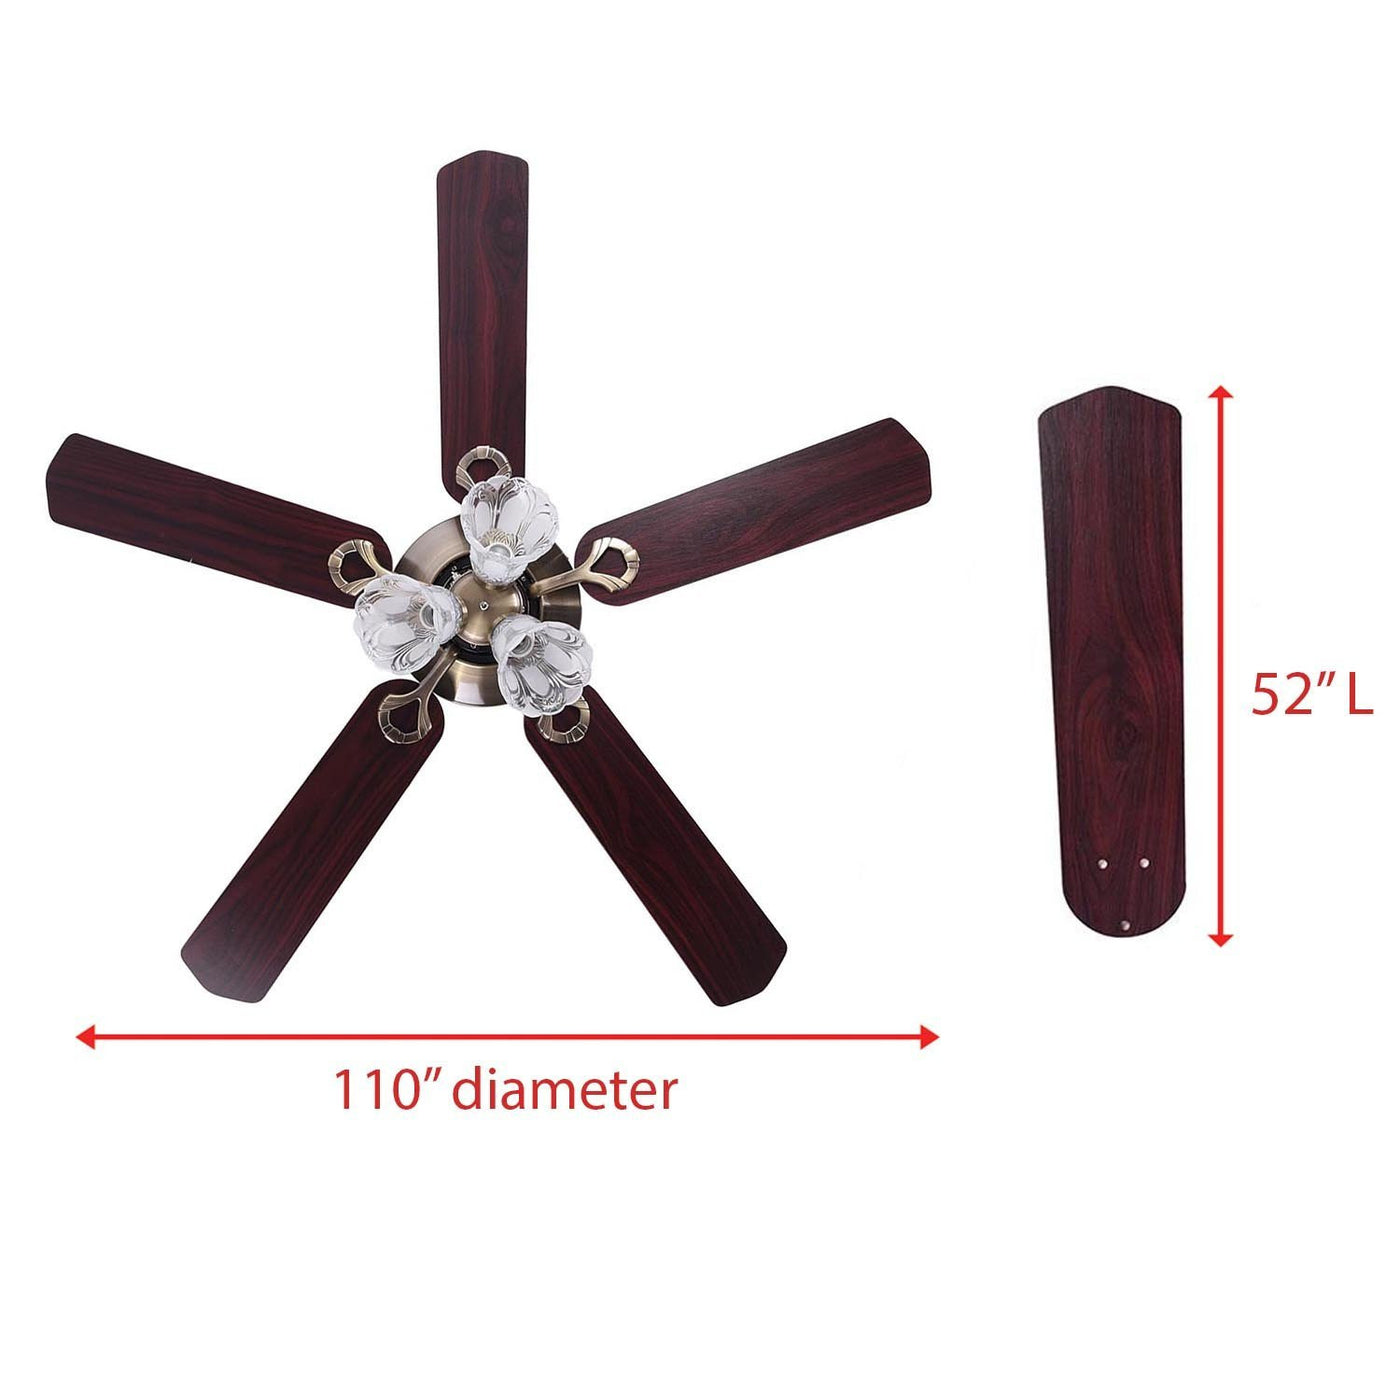 5 Blade Ceiling Fan W Light Amp Remote Koval Inc